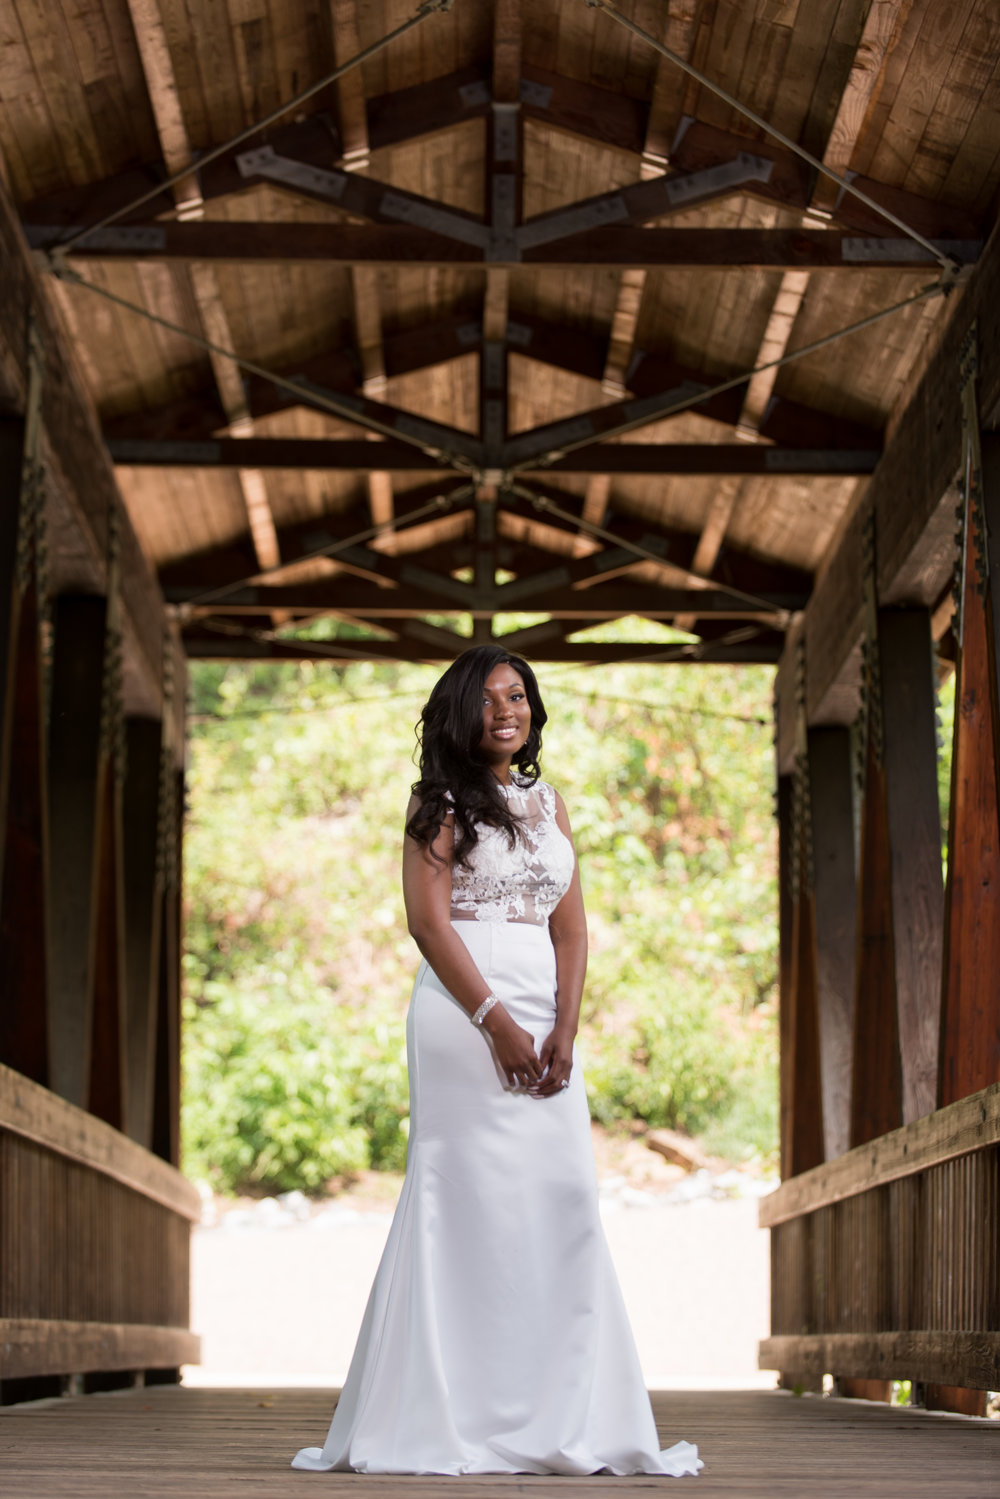 Toya+Mike_Private-Leighton DaCosta Photographer-untitled-9613-2.jpg